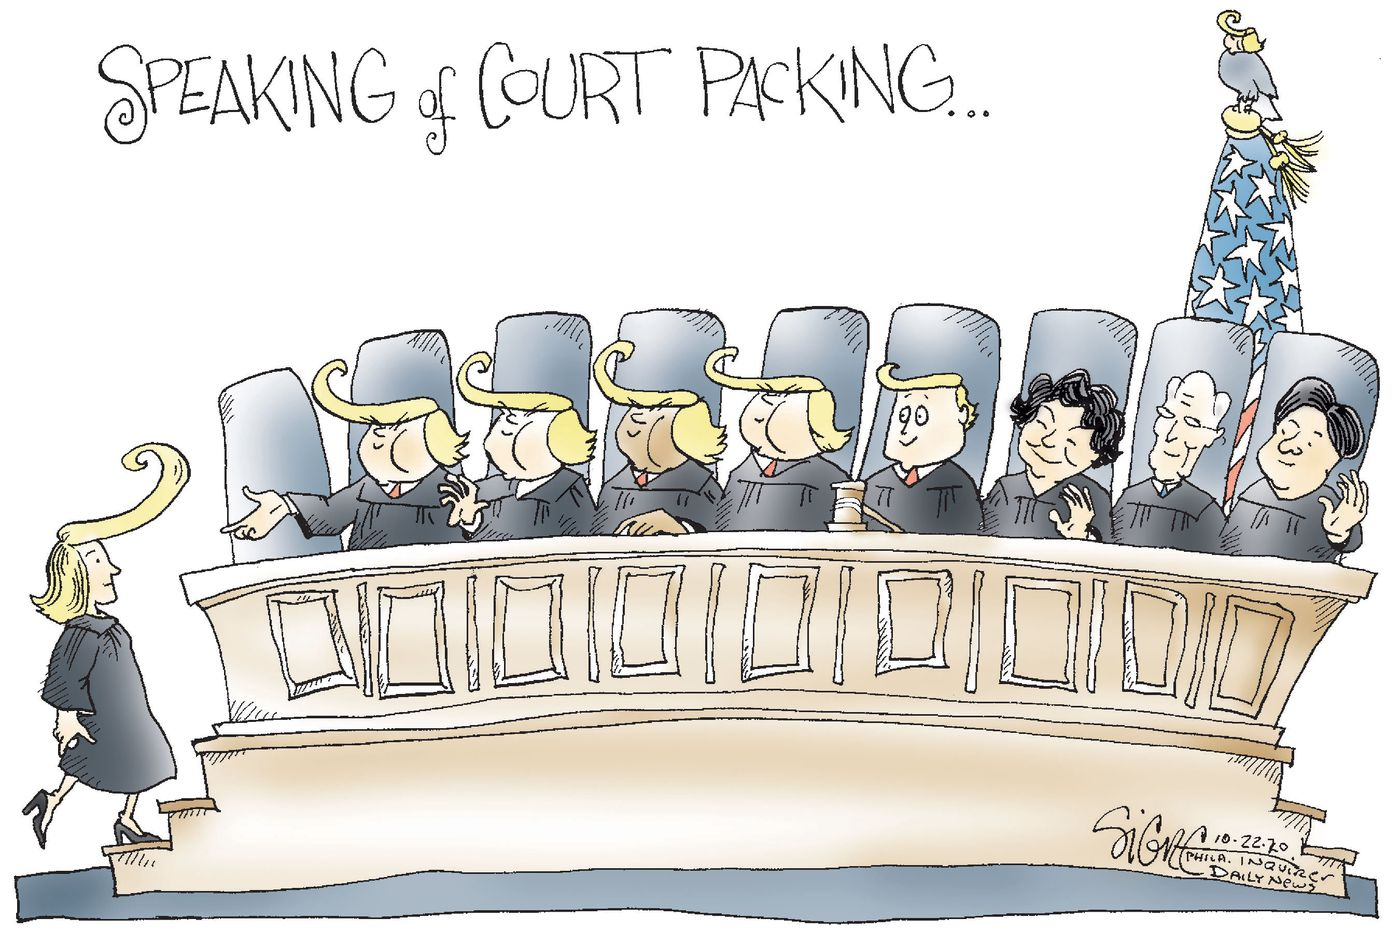 Caption:  Speaking of Court Packing.  Image:  Supreme Court with six justices croiffed like Donald Trump.